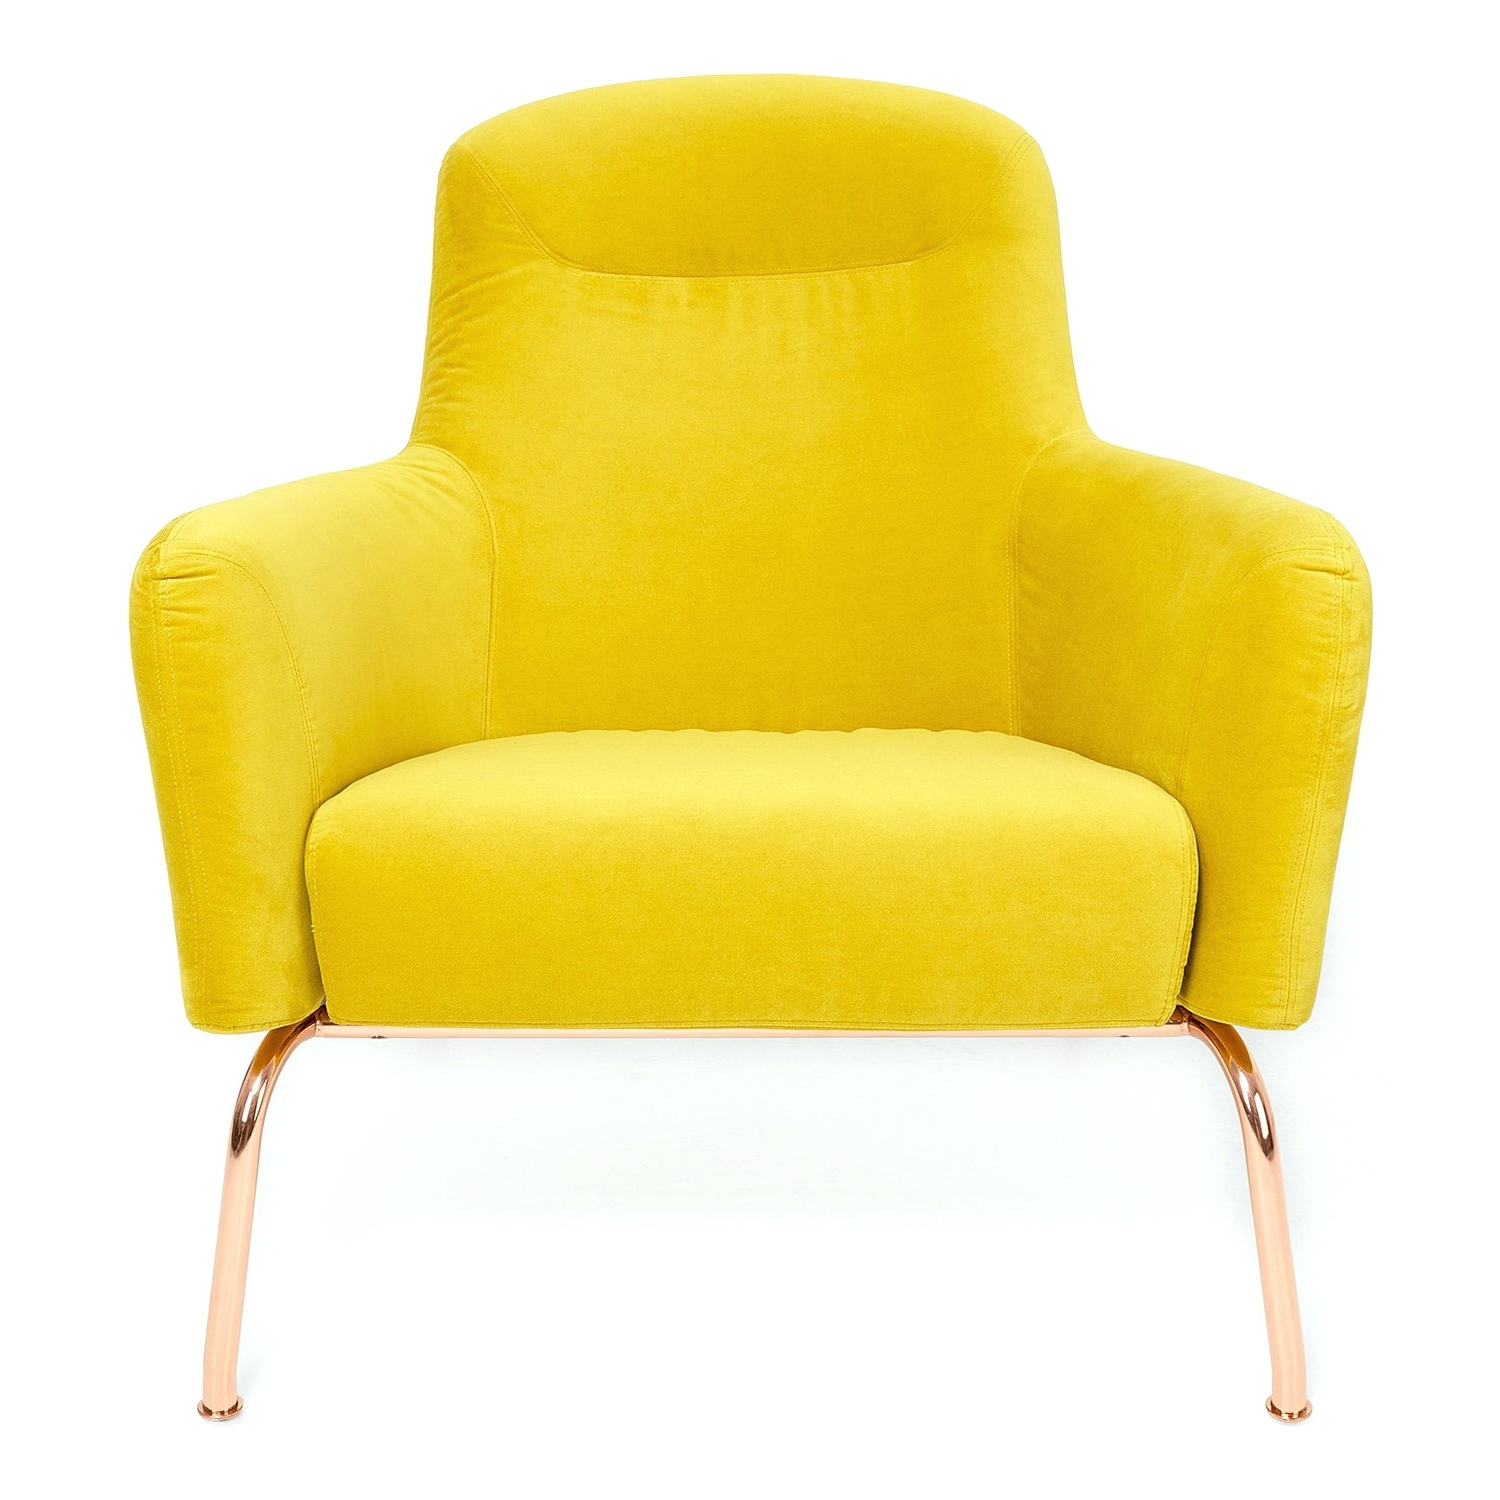 Yellow Lounge Chair Cushions • Lounge Chairs Ideas Inside Best And Newest Yellow Chaise Lounge Chairs (View 15 of 15)